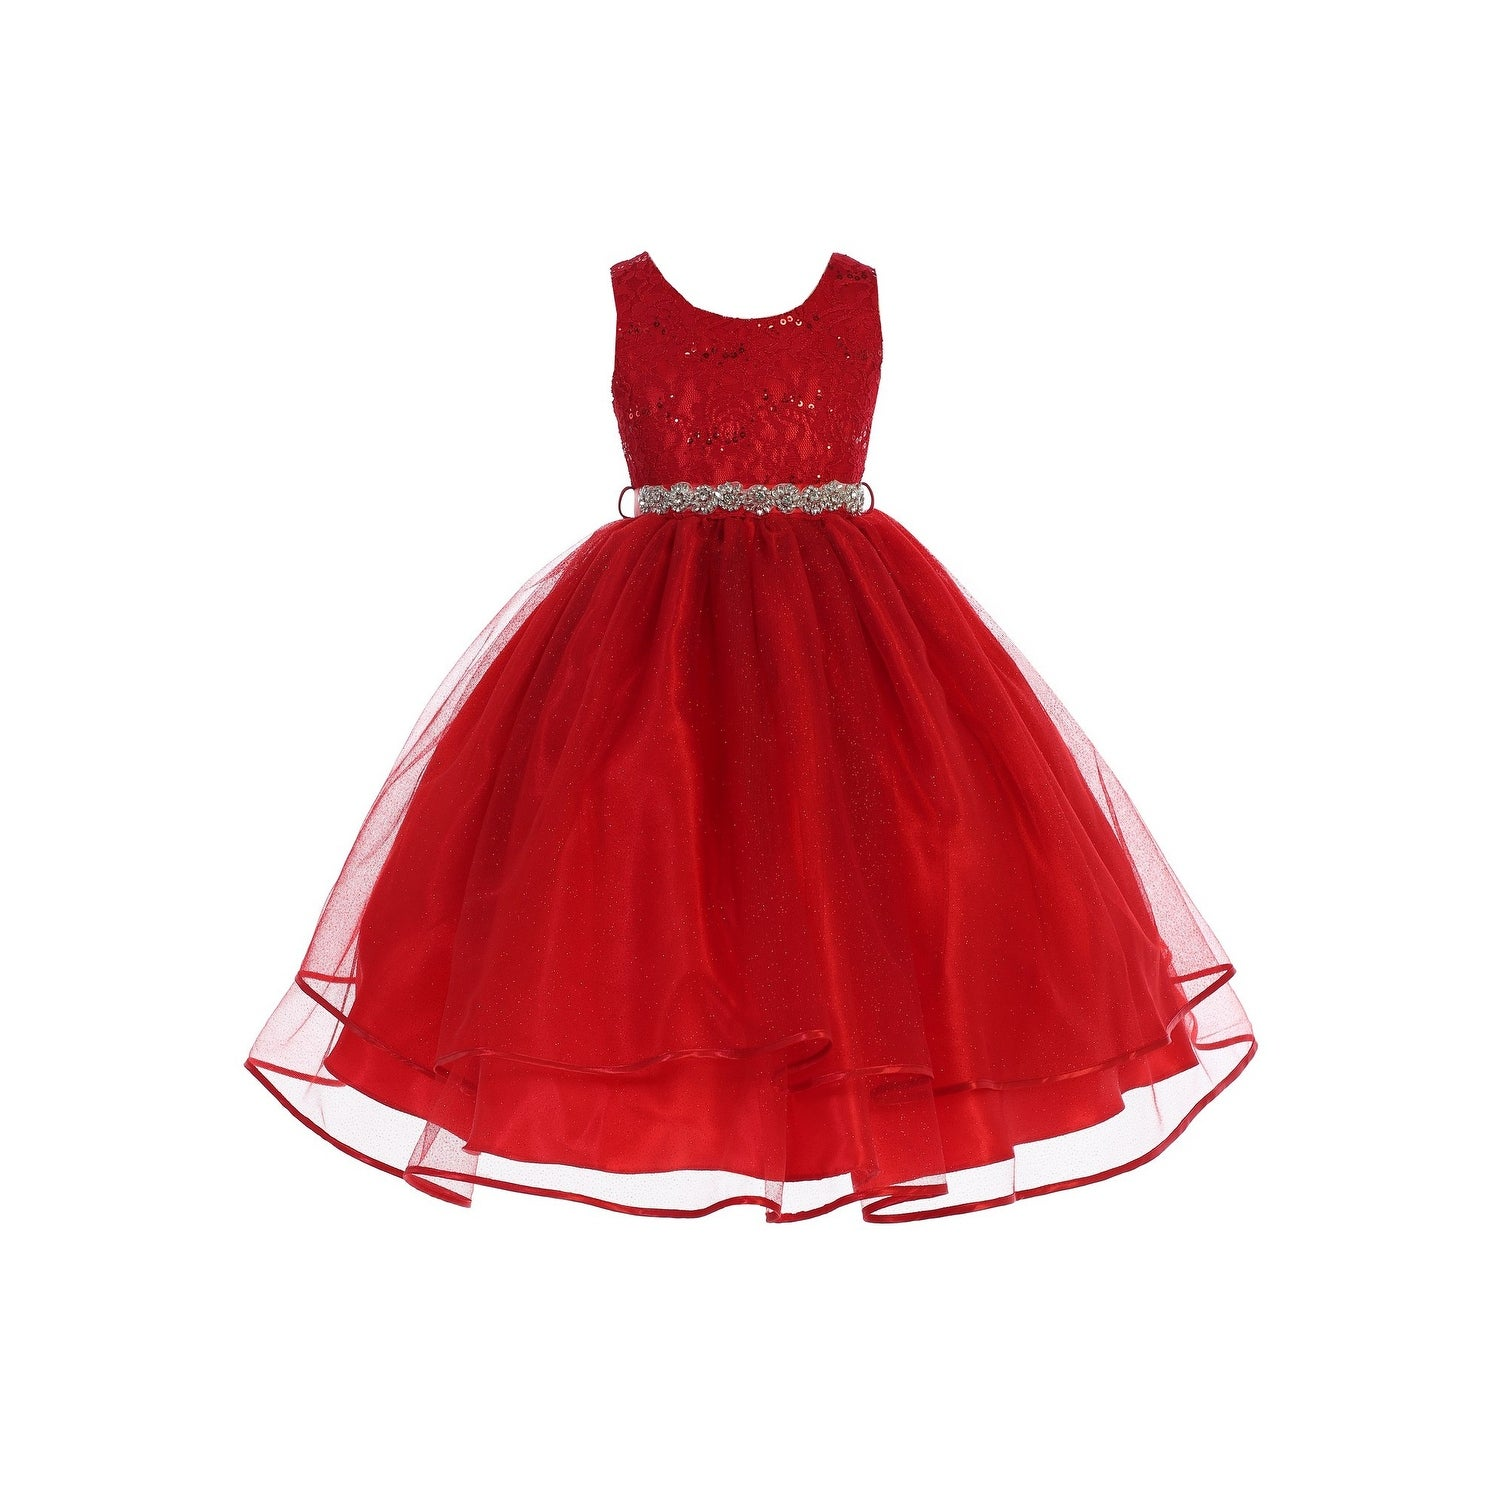 0f7633e3ebb7 Shop Little Girls Red Sequin Lace Sparkly Mesh Stylish Flower Girl Dress - Free  Shipping Today - Overstock - 23540894